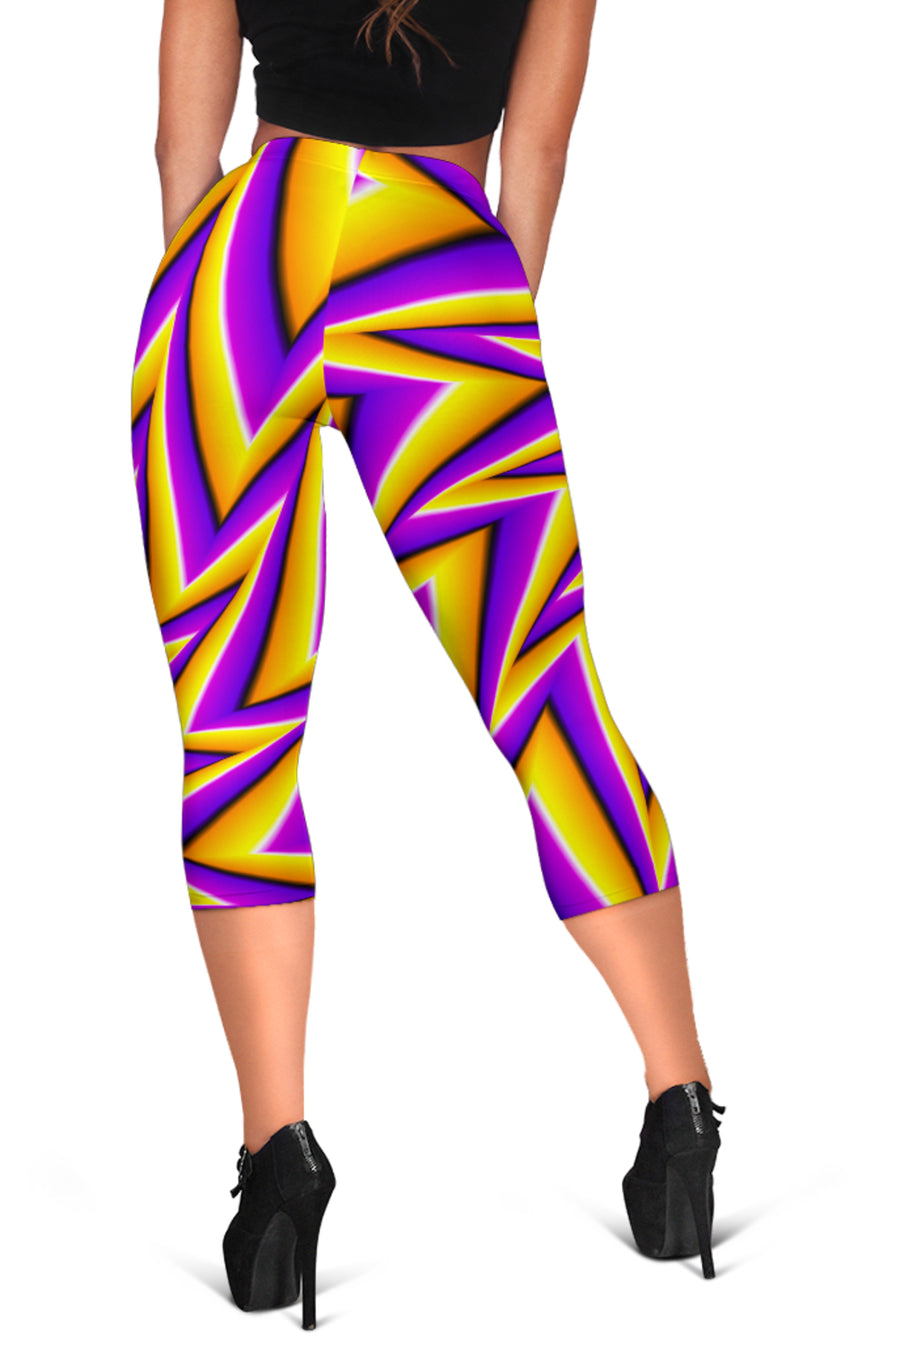 Yellow Big Bang Moving Optical Illusion Women's Capri Leggings